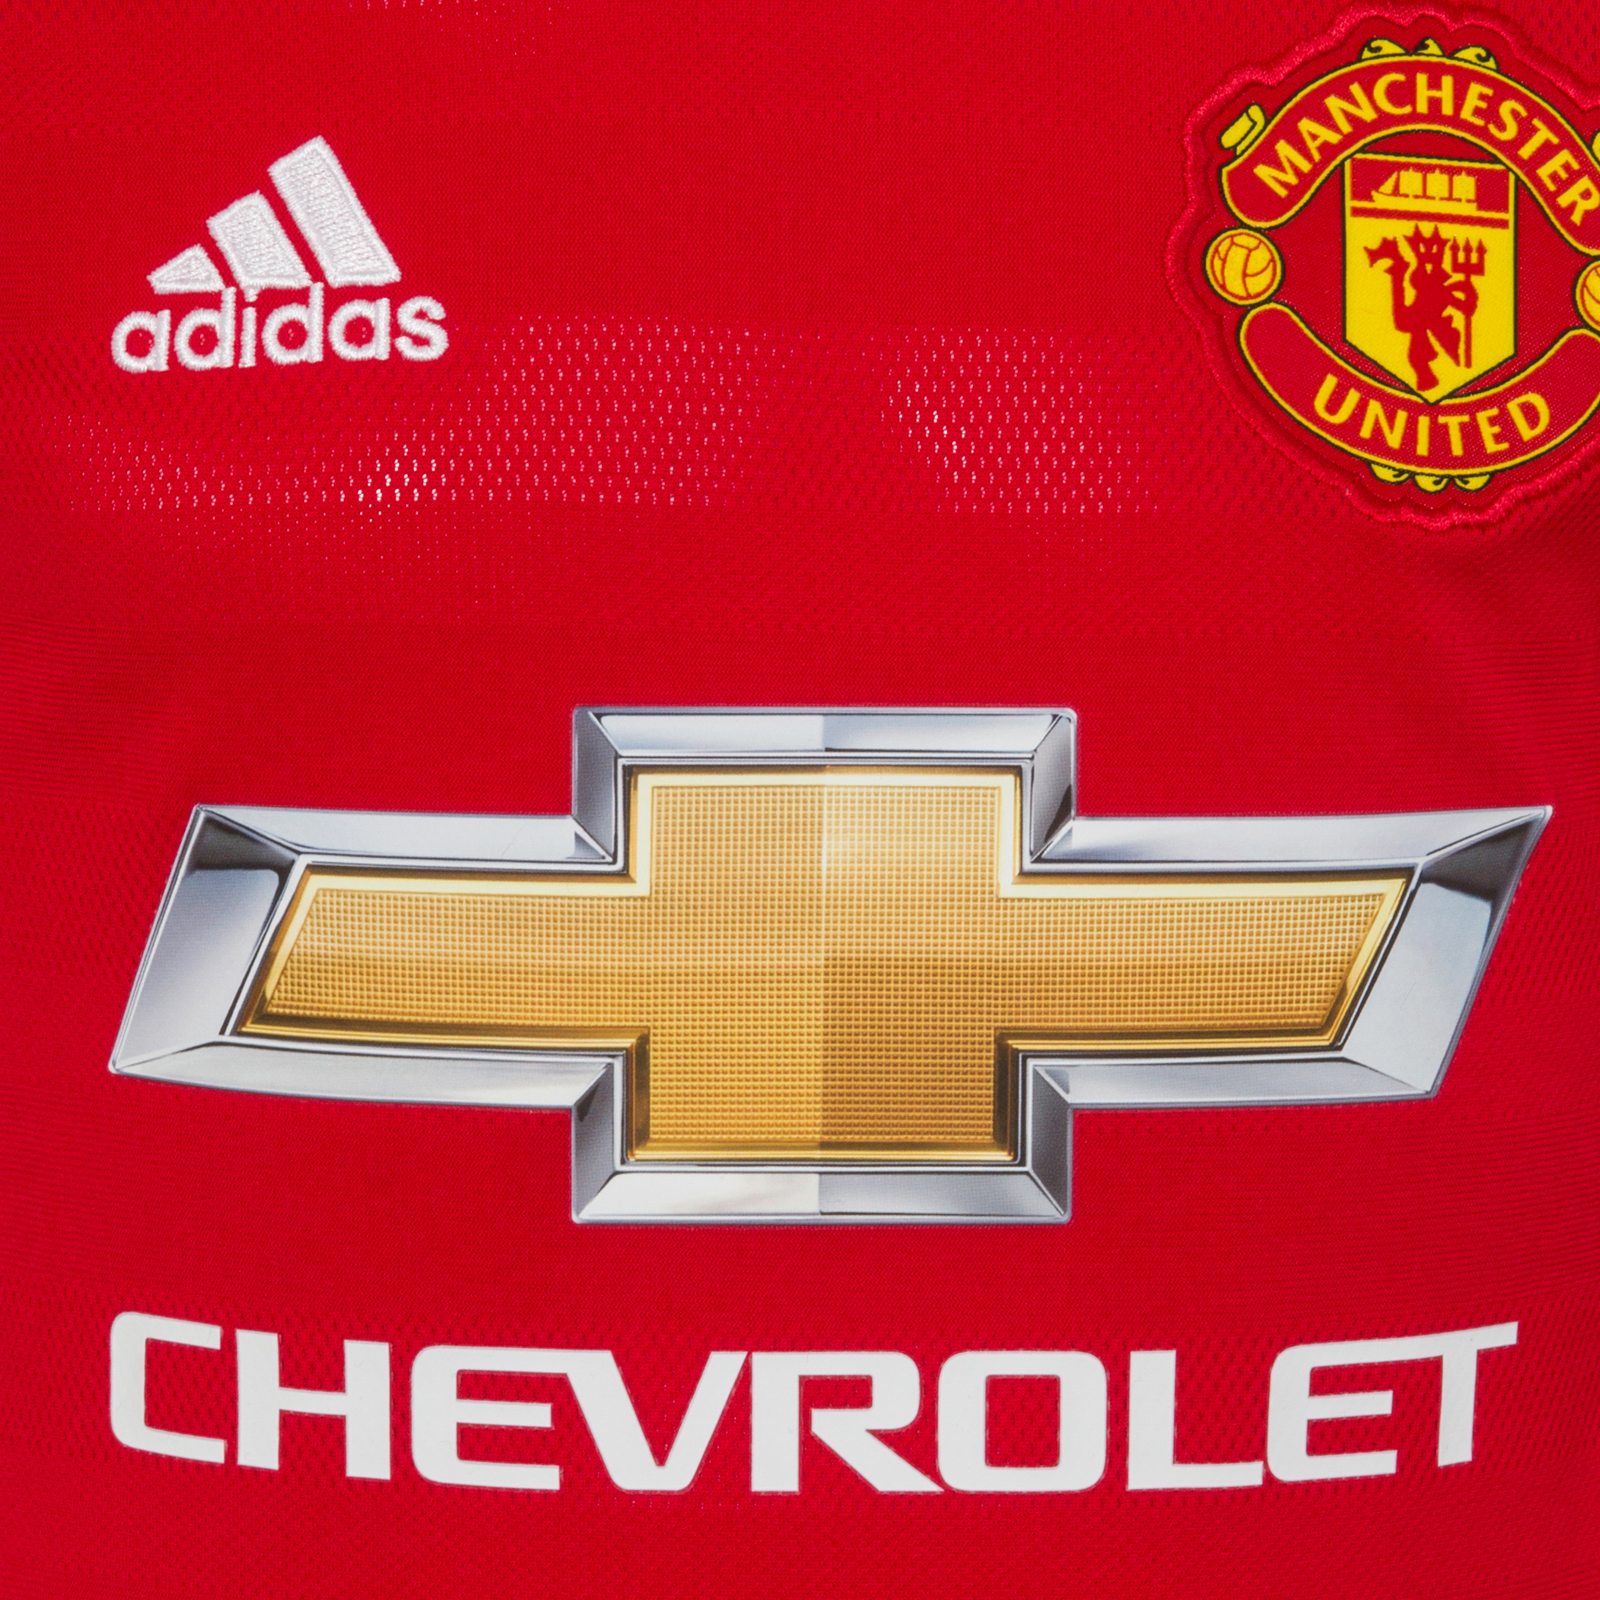 Manchester-United-FC-Official-Gift-Boys-Adidas-Home-Kit-Long-Sleeve-Shirt thumbnail 5